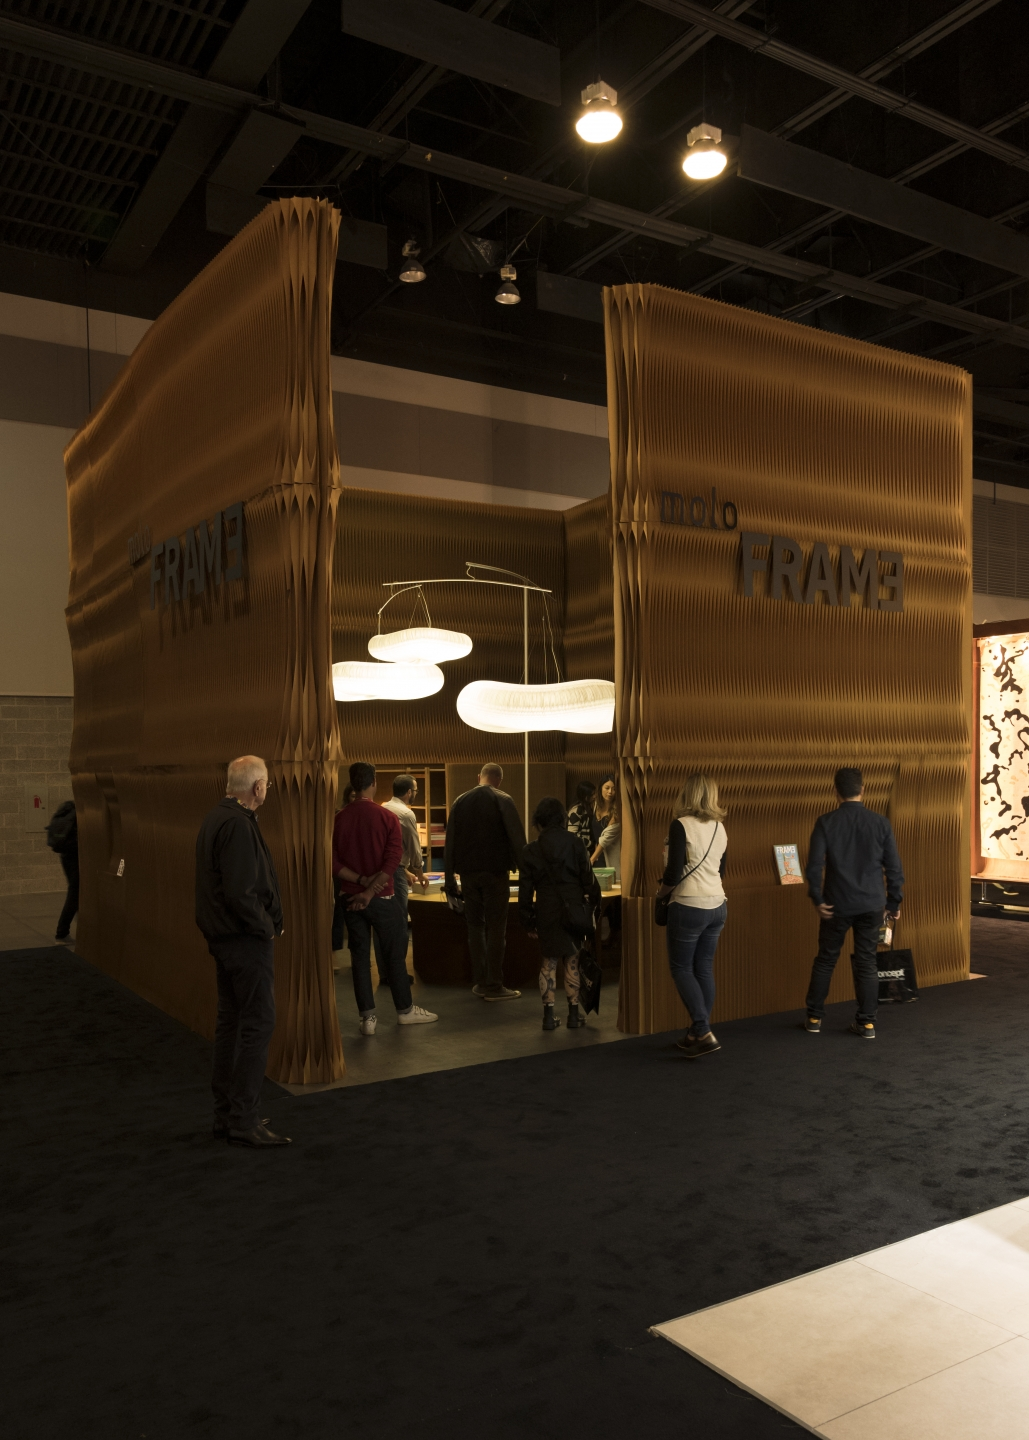 Paper trade show stand at IDS Vancouver 2017. portable partition walls by molo